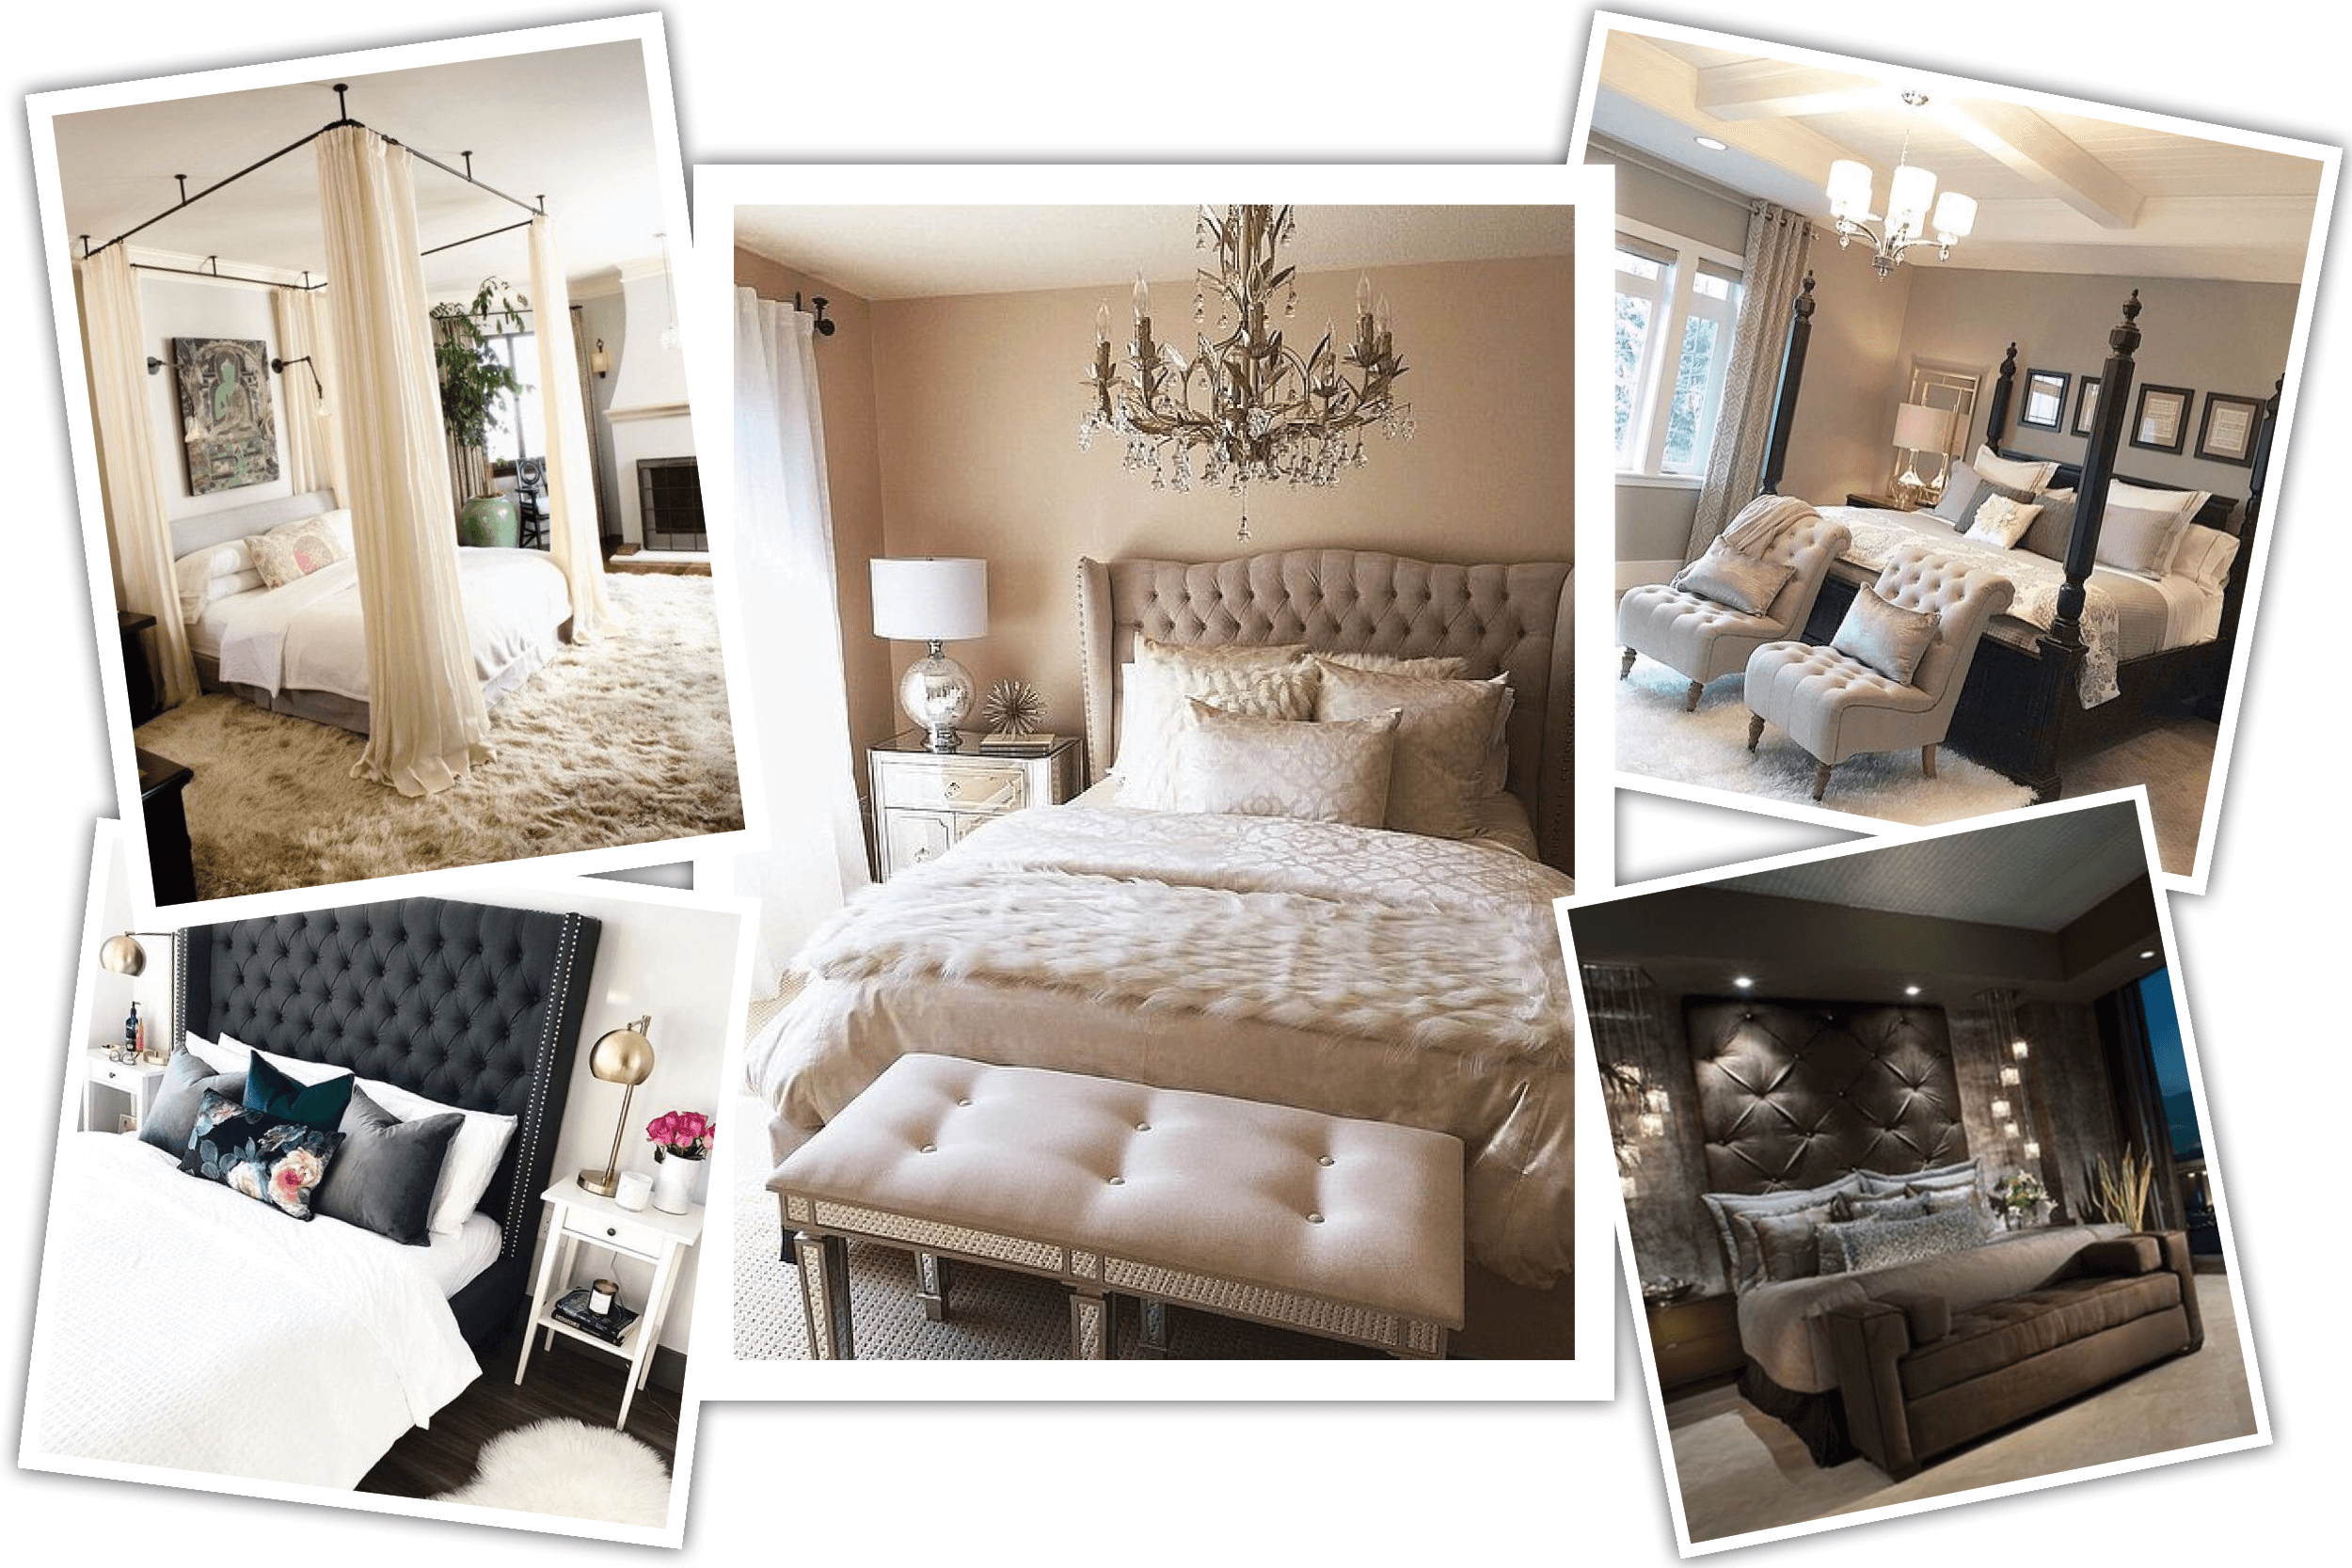 romantic bedroom online design by Decorilla designer Miaden C. - inspiration